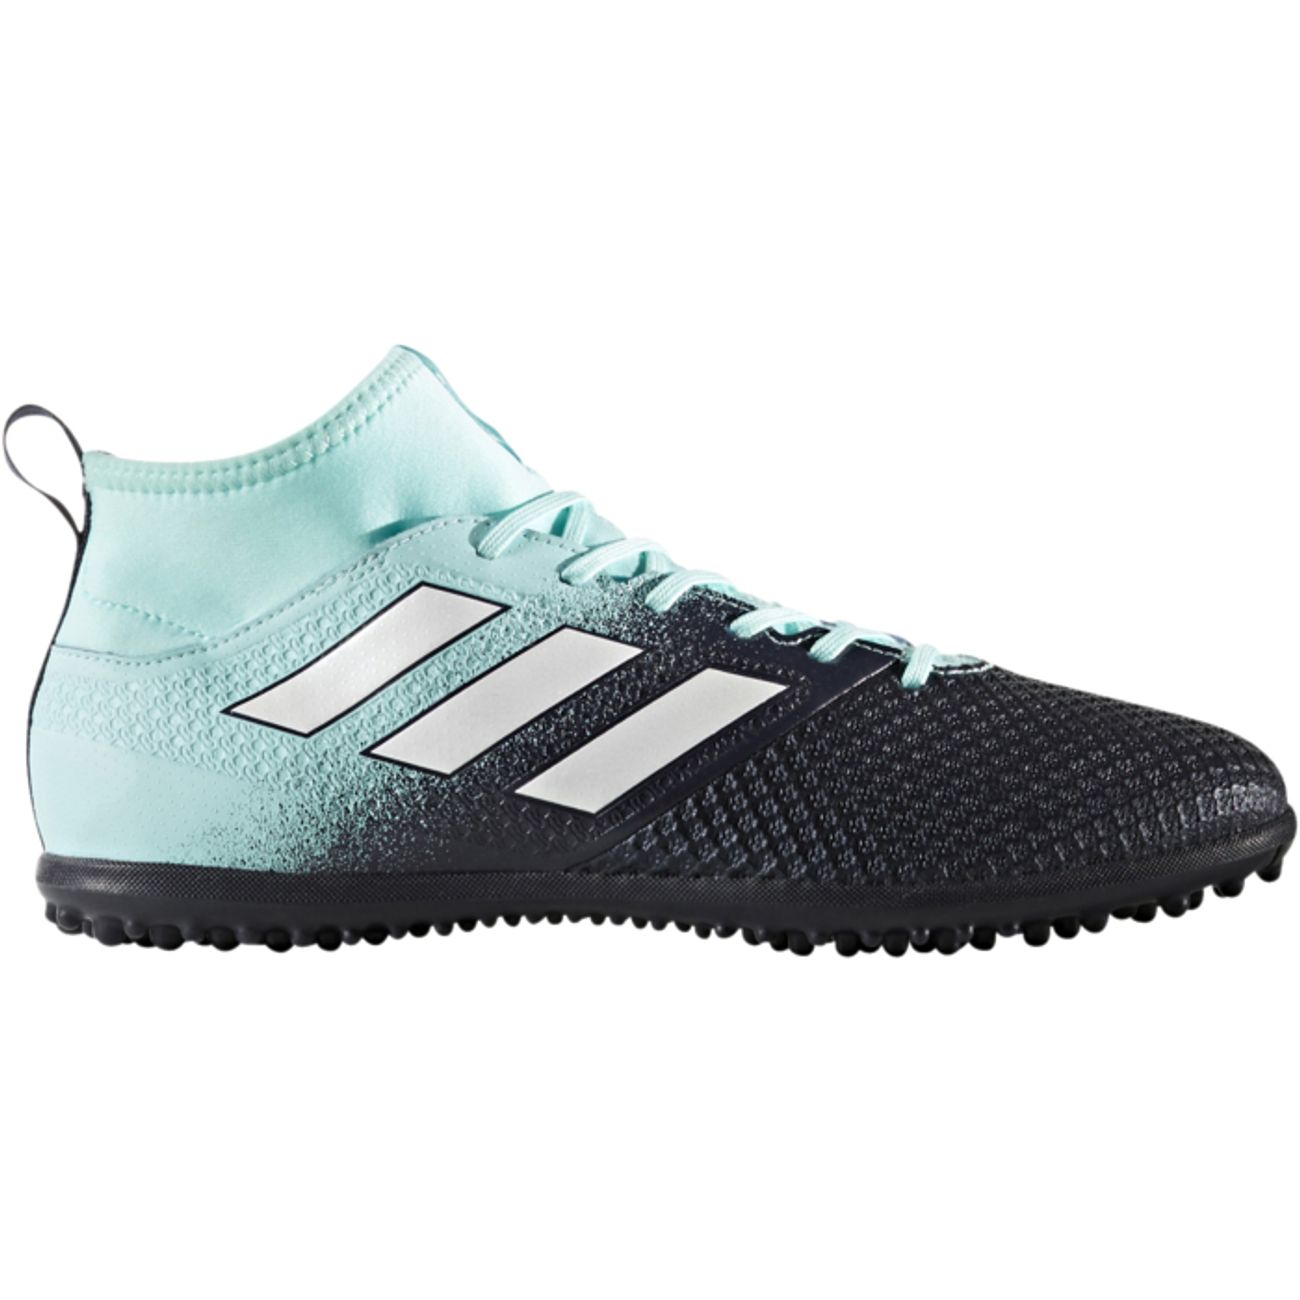 adidas Chaussures Ace Tango 17.3 Chaussure Homme adidas soldes uiOy2pS